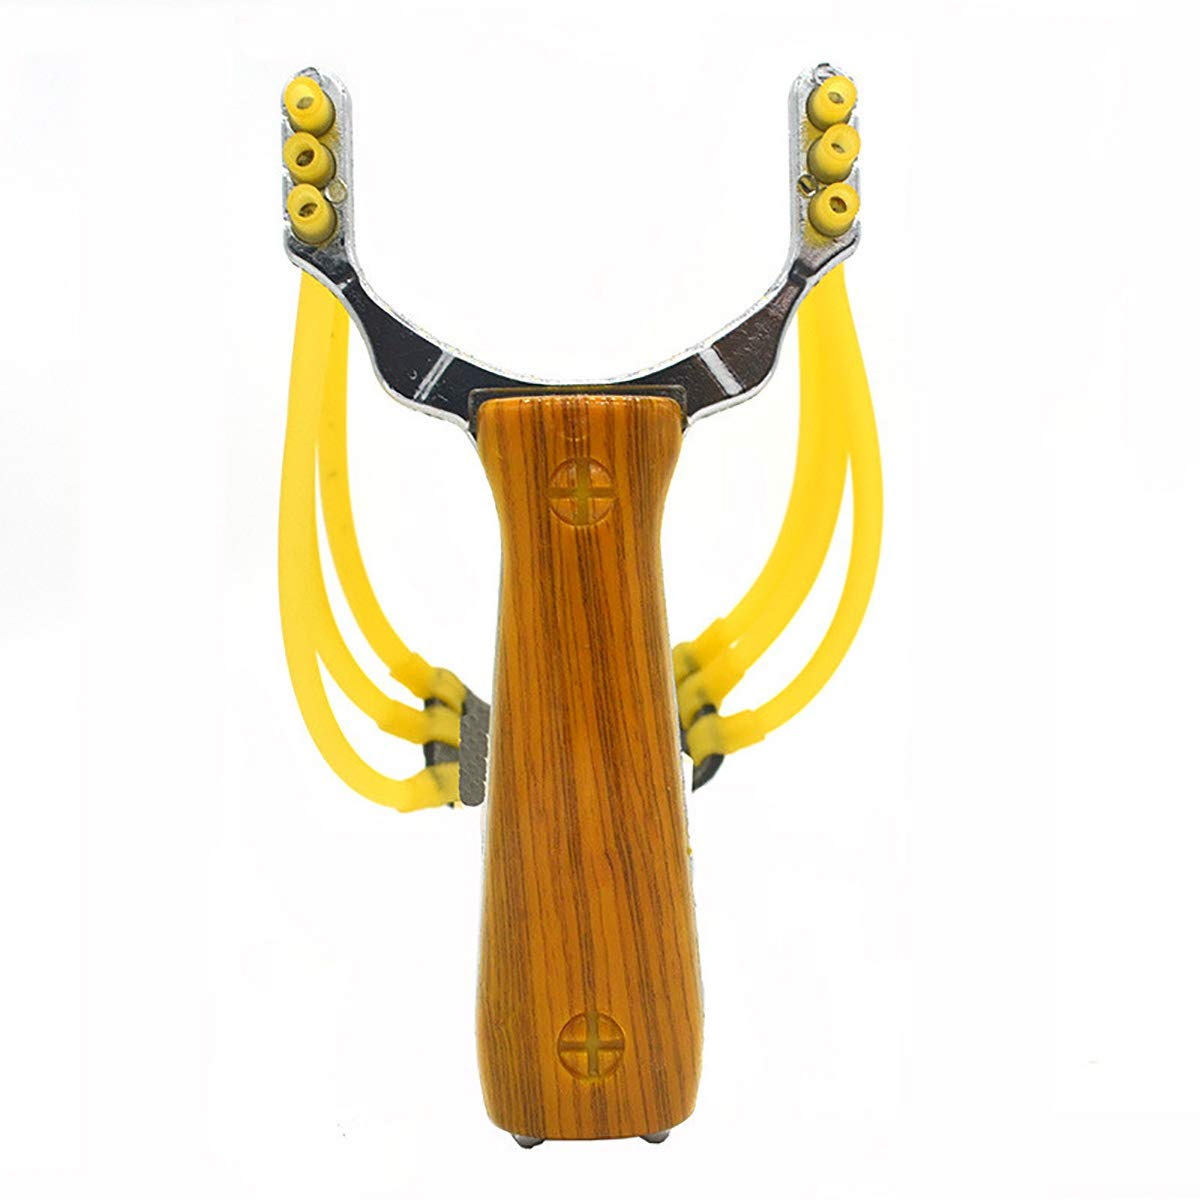 DouRyoku Slingshot Catapult Rubber Bands Toy Fishing Camping Hiking Portable Outdoor Tools Yellow